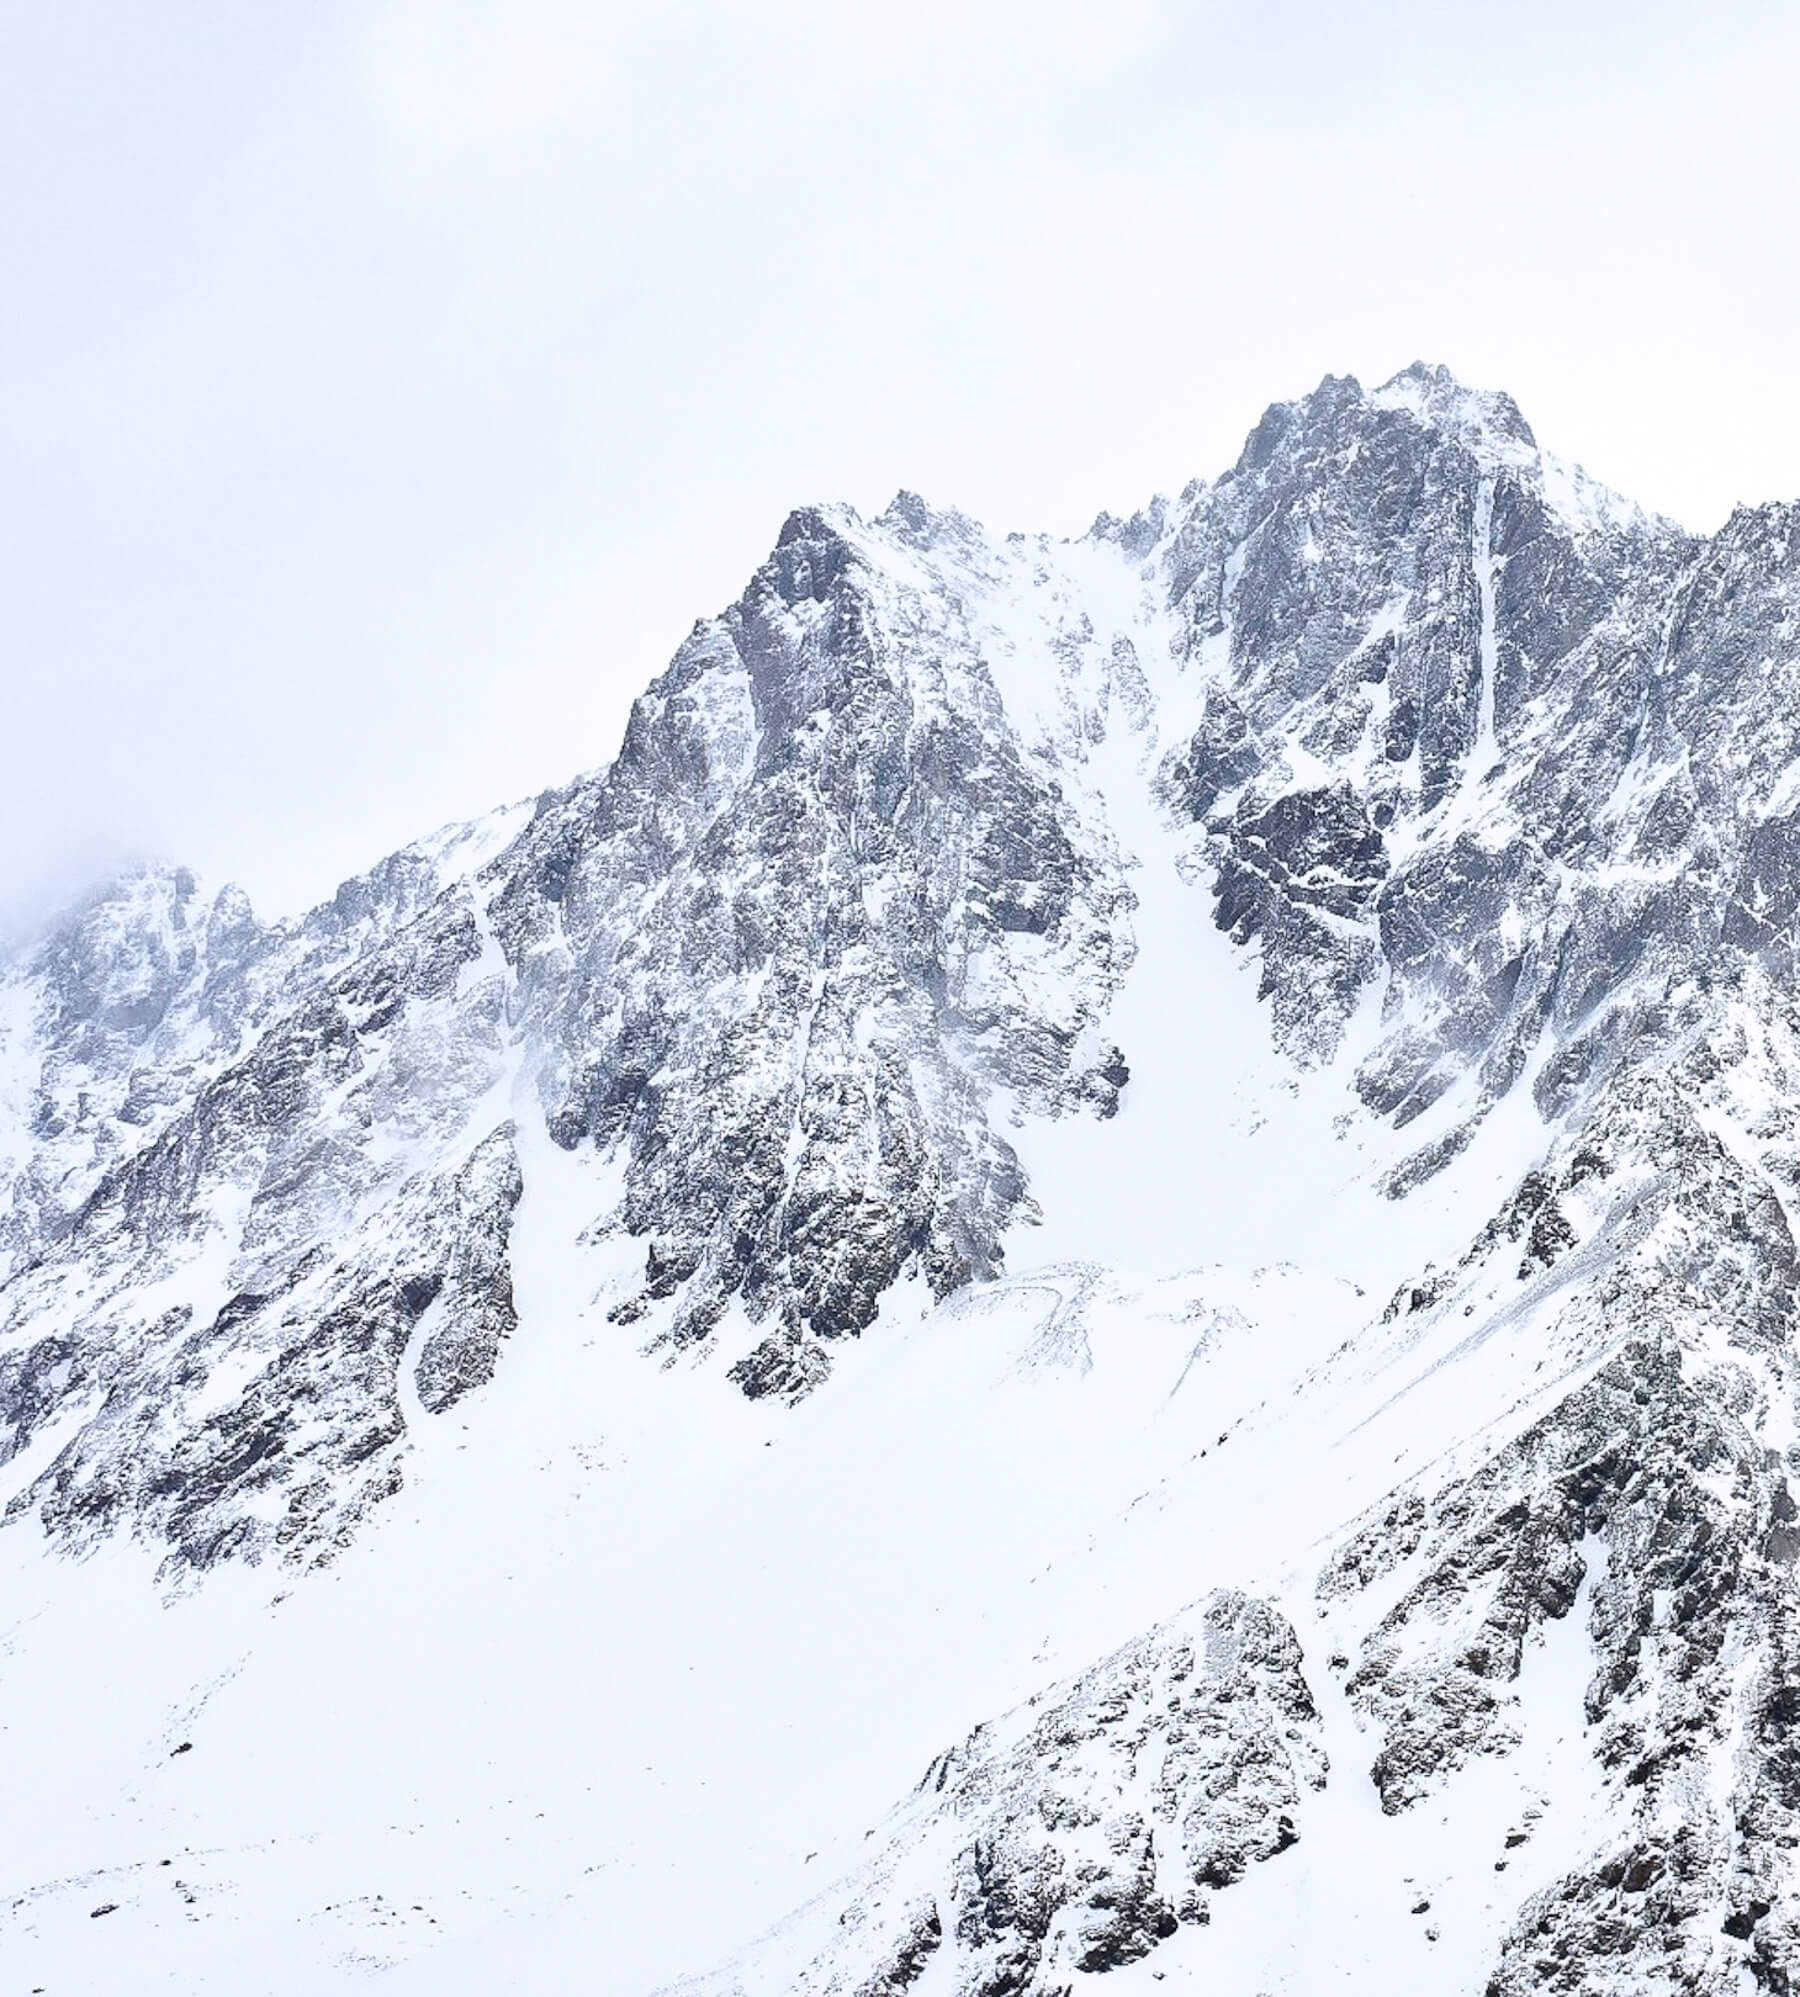 The rocky Andes Mountain peak covered in snow